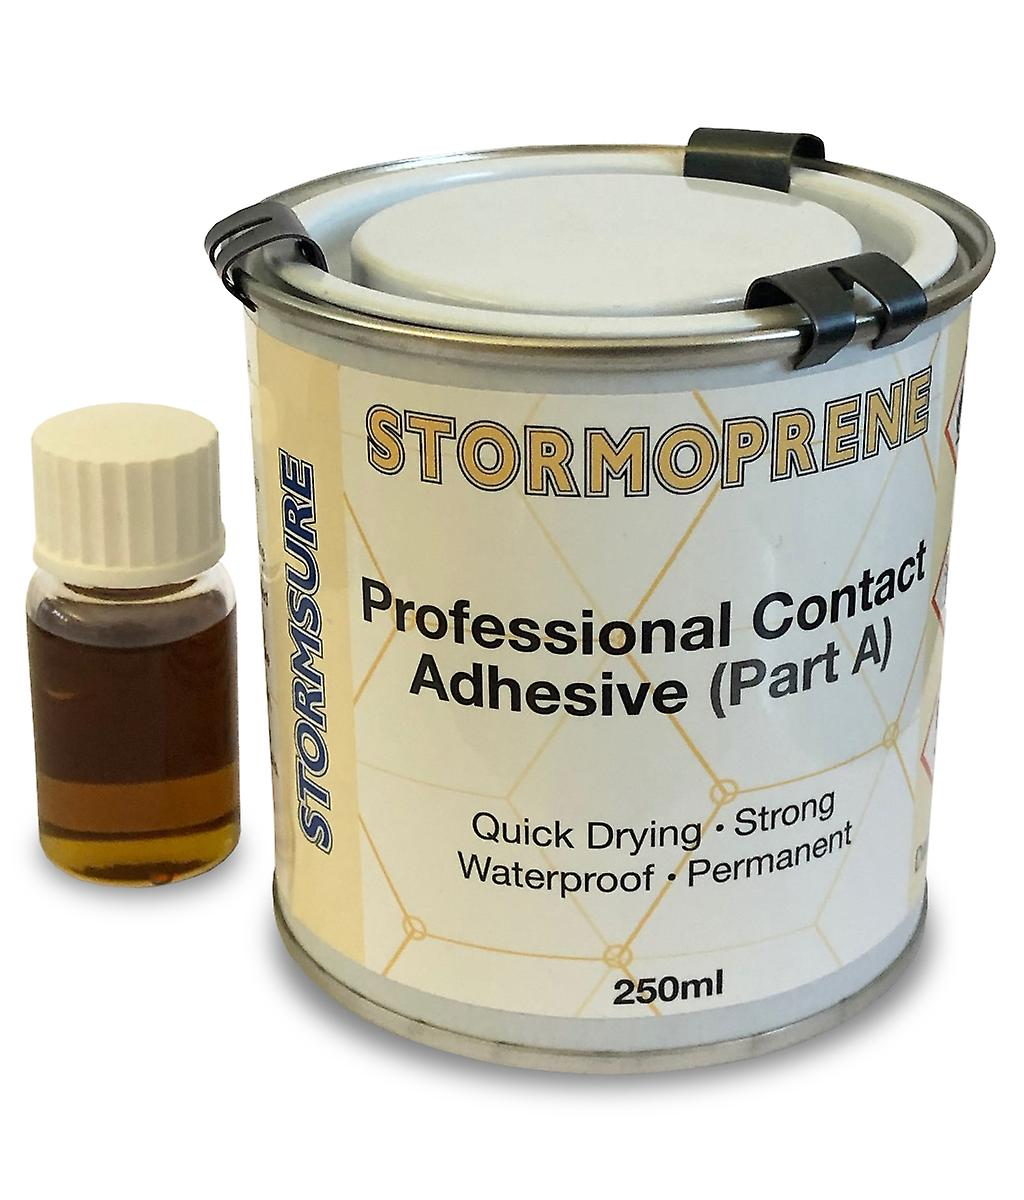 Stormoprene 2-Part Contact Adhesive 250ml